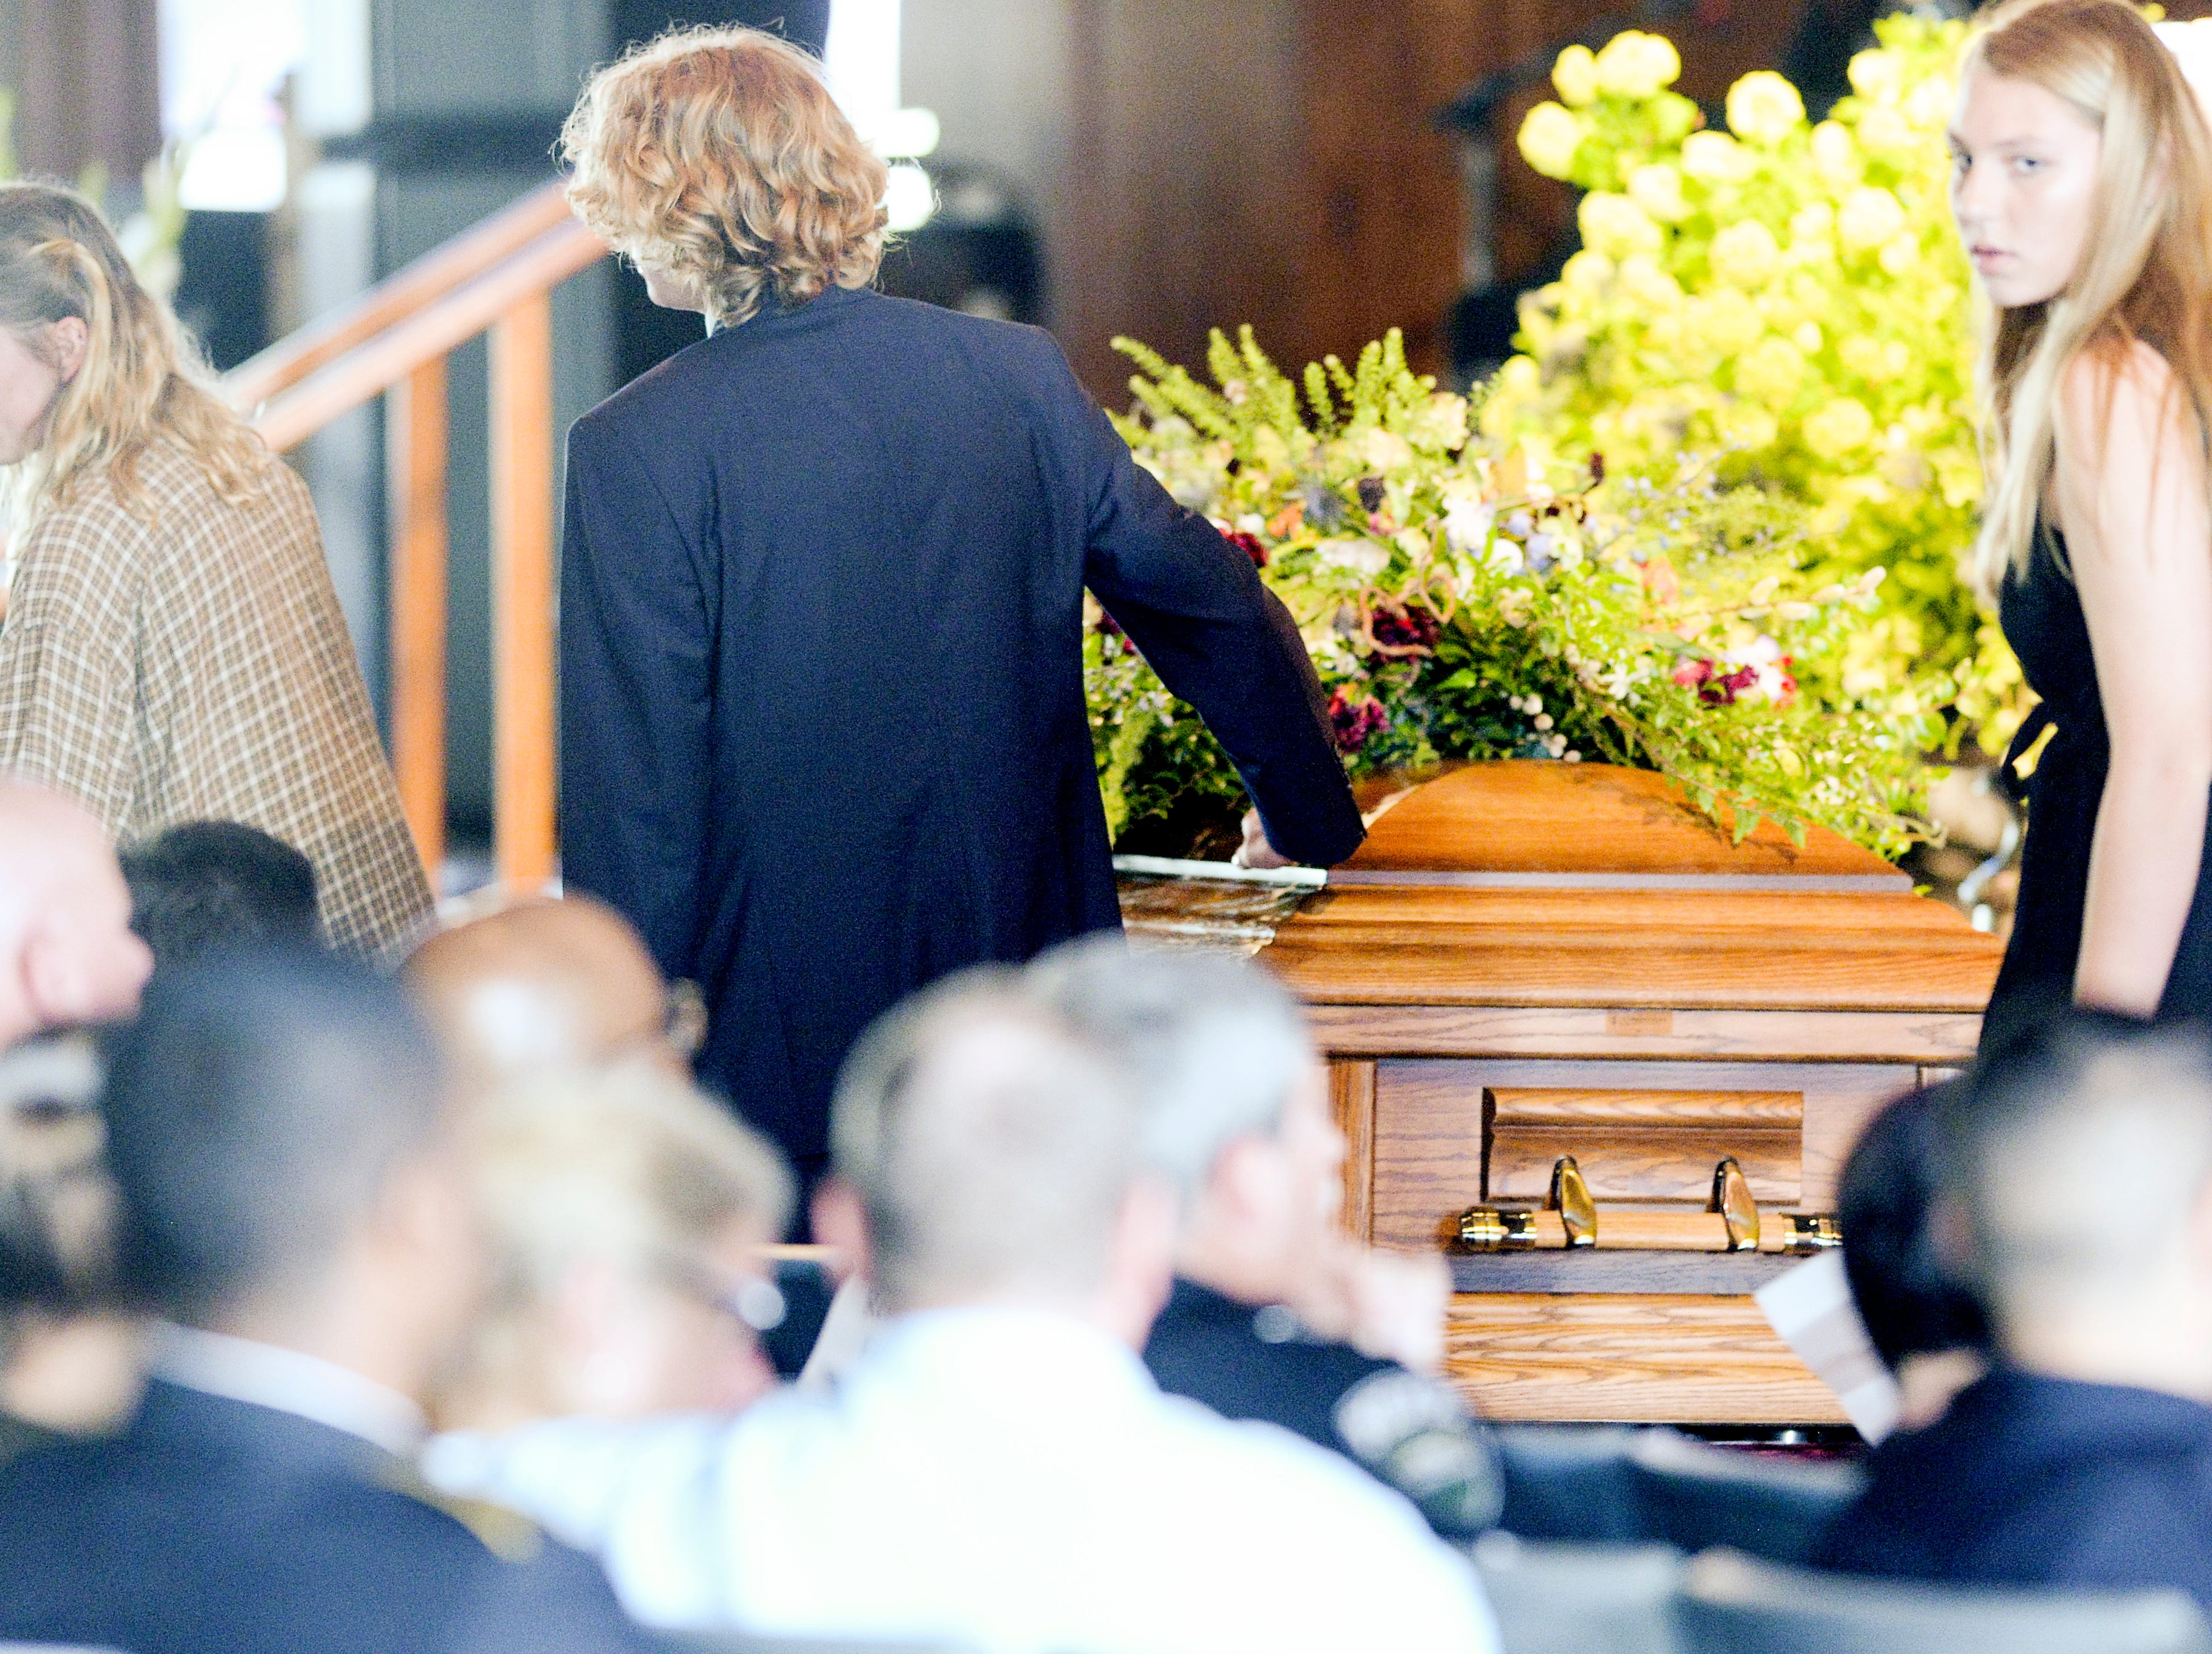 Riley Howell's brother, Teddy, 14, places a hand on his casket after speaking during a memorial service May 5, 2019, at Stuart Auditorium in Lake Junaluska, North Carolina.